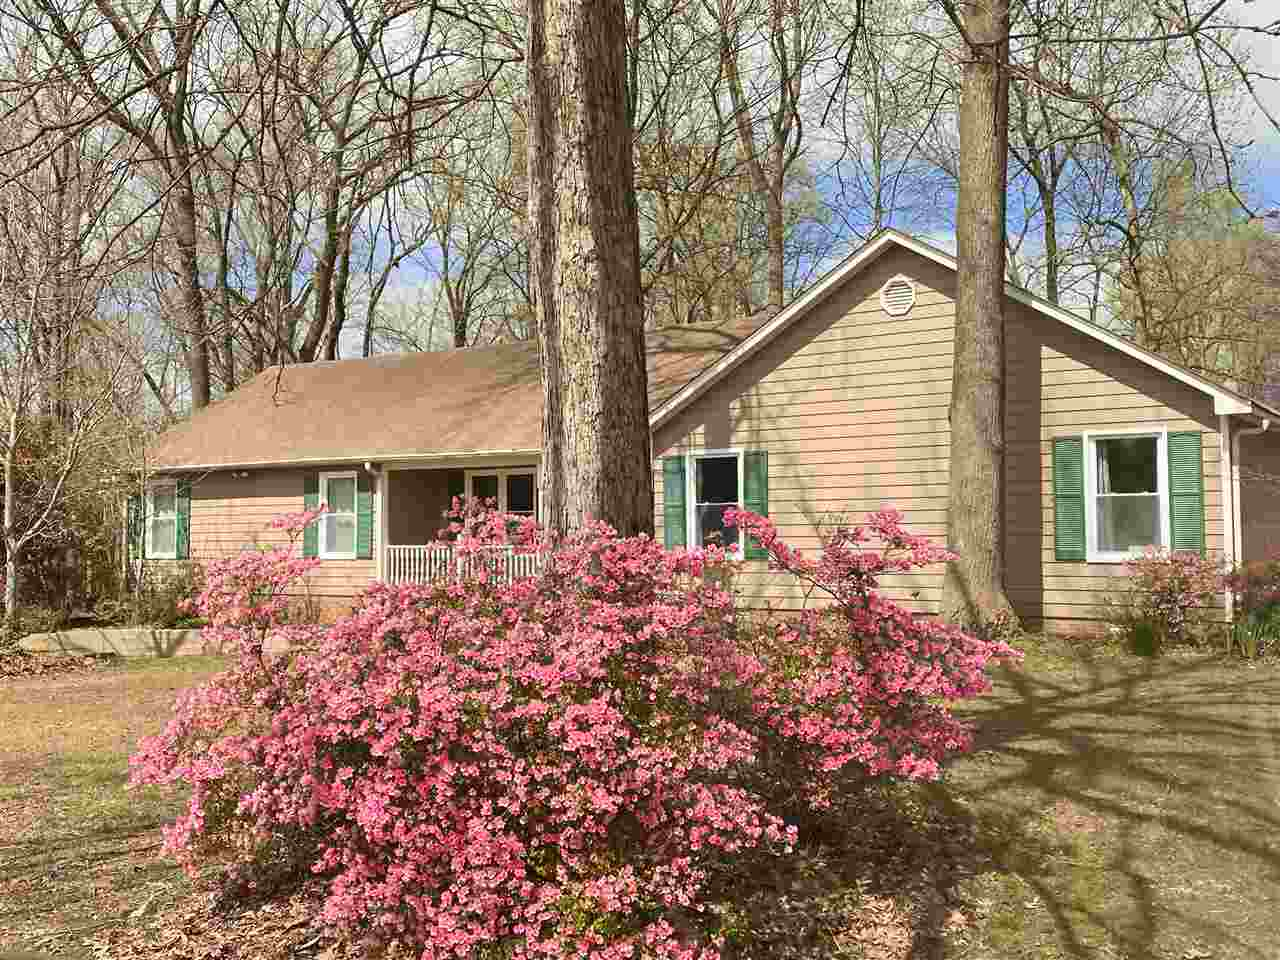 34 Autumnwood Cove, Jackson, Tennessee 38305, 3 Bedrooms Bedrooms, ,2 BathroomsBathrooms,Residential,For Sale,34 Autumnwood Cove,201282